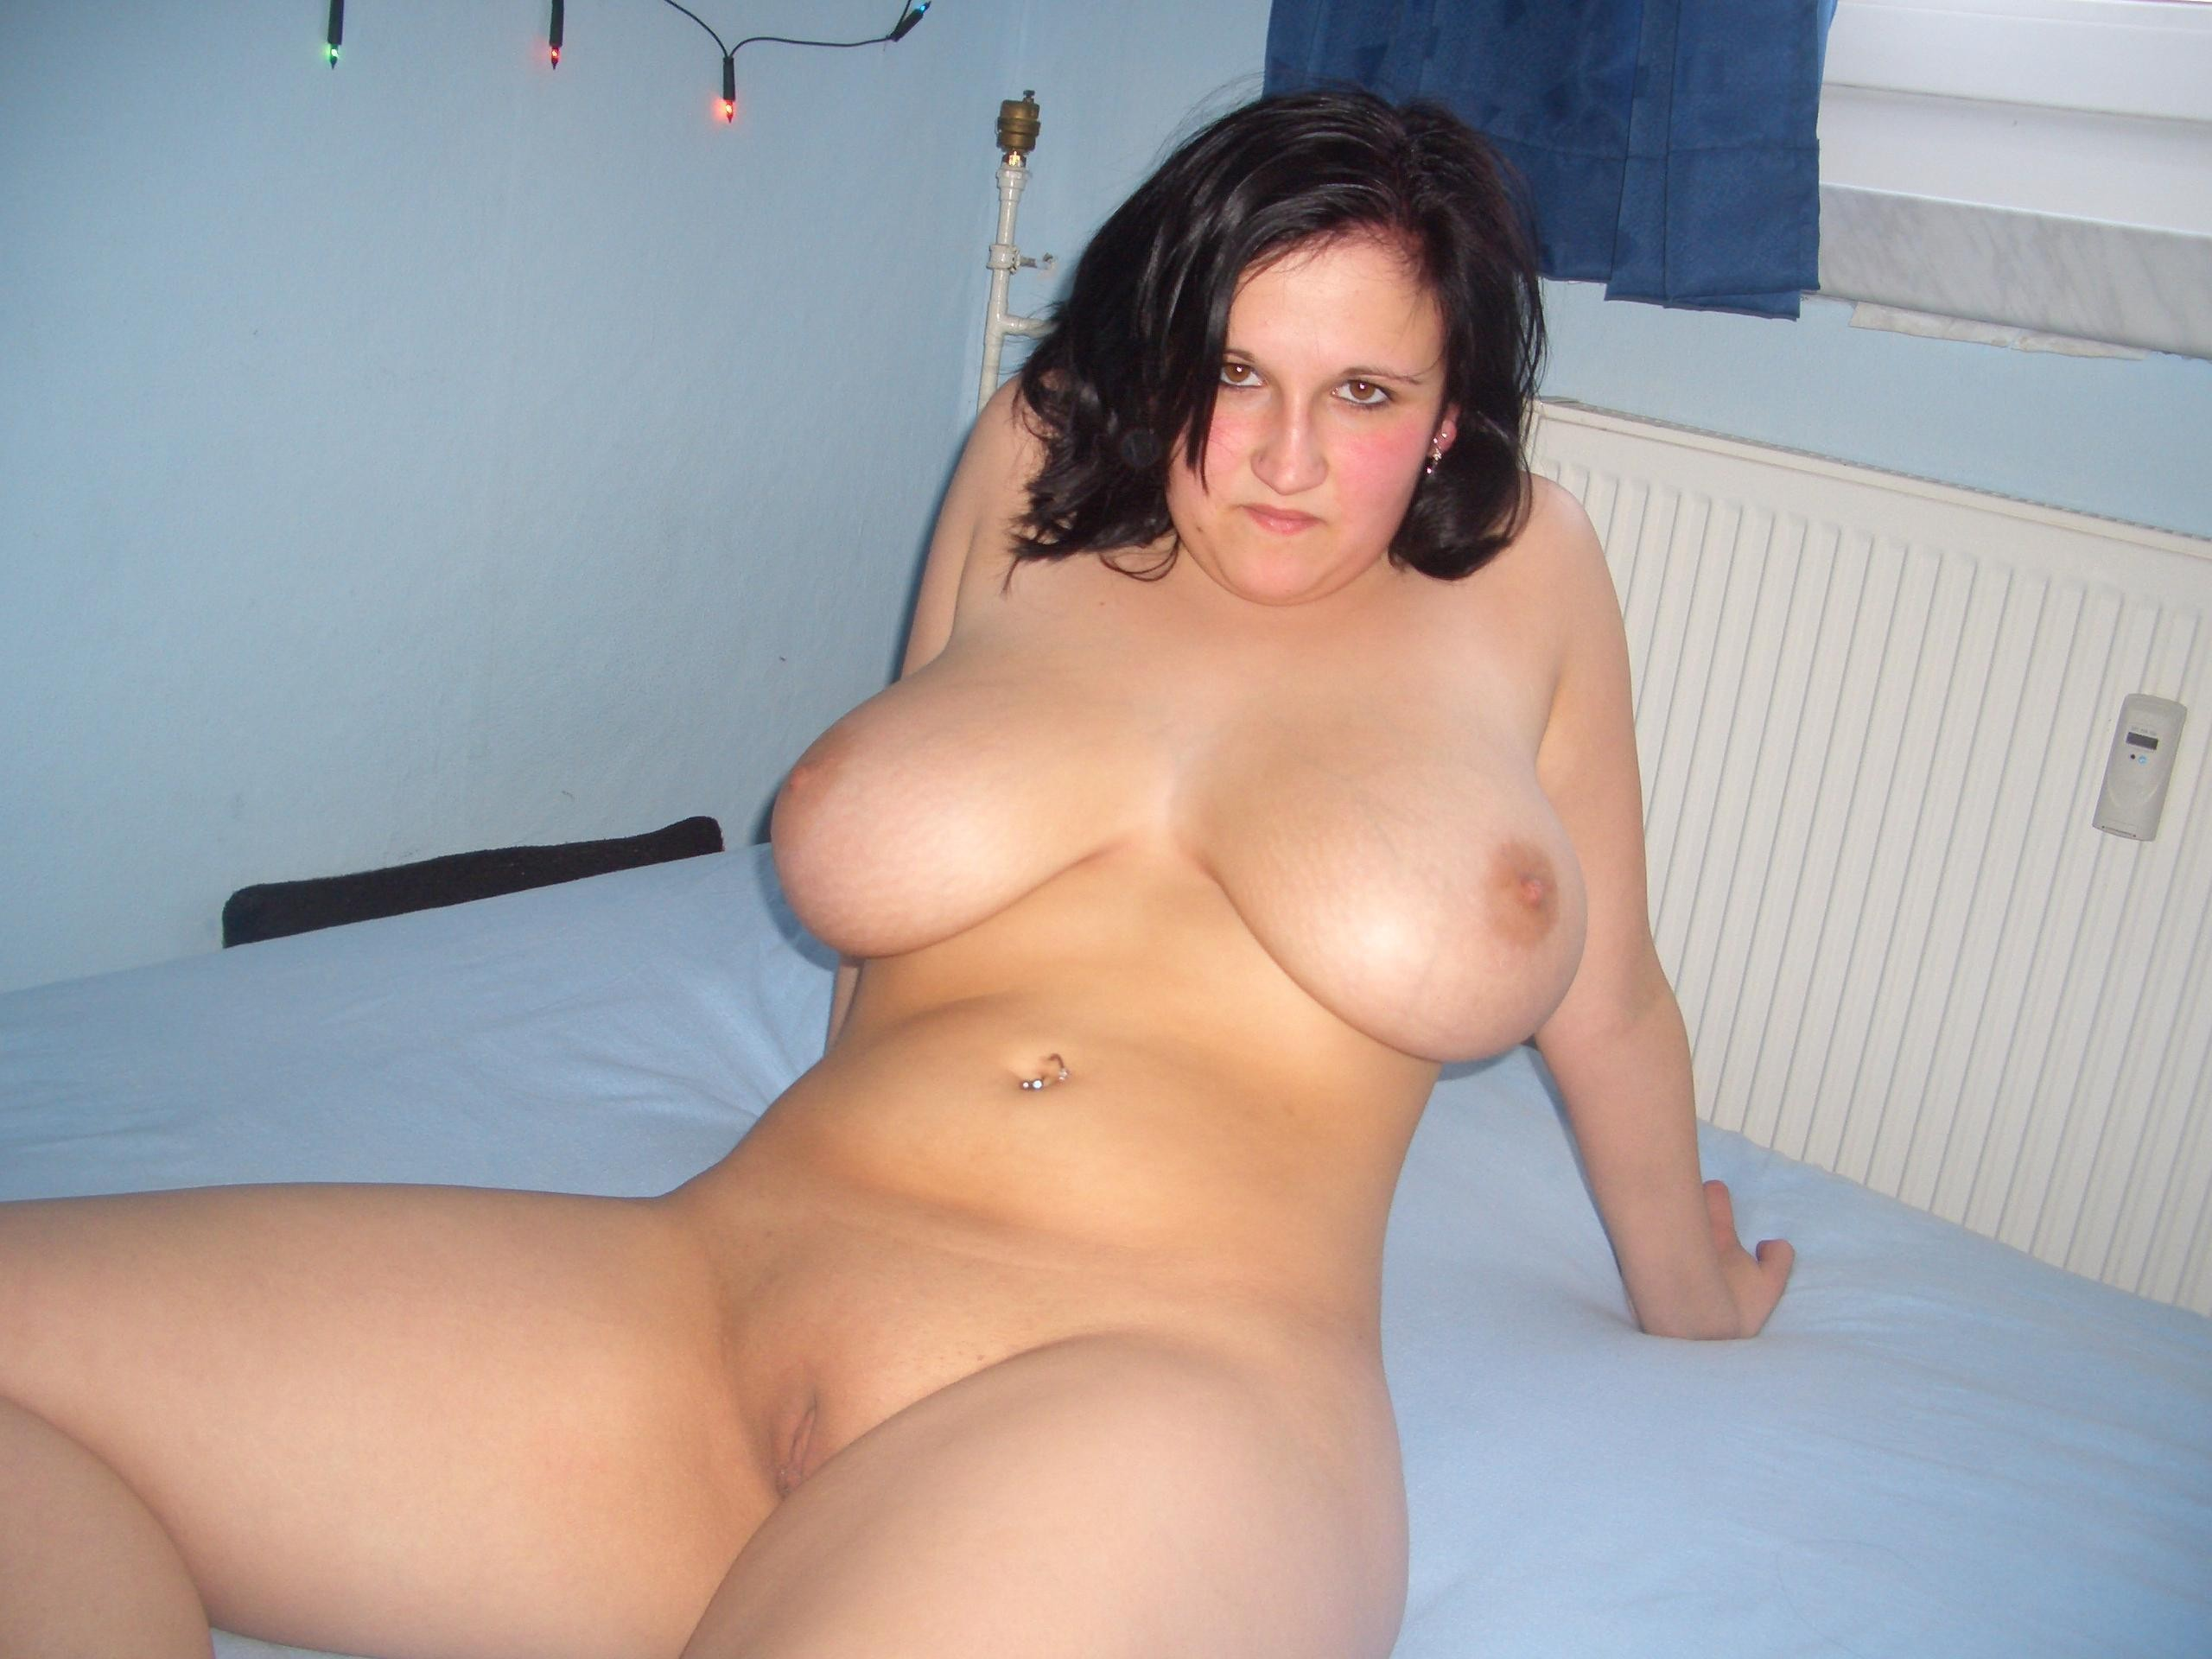 image Chubby brunette gb in hotel